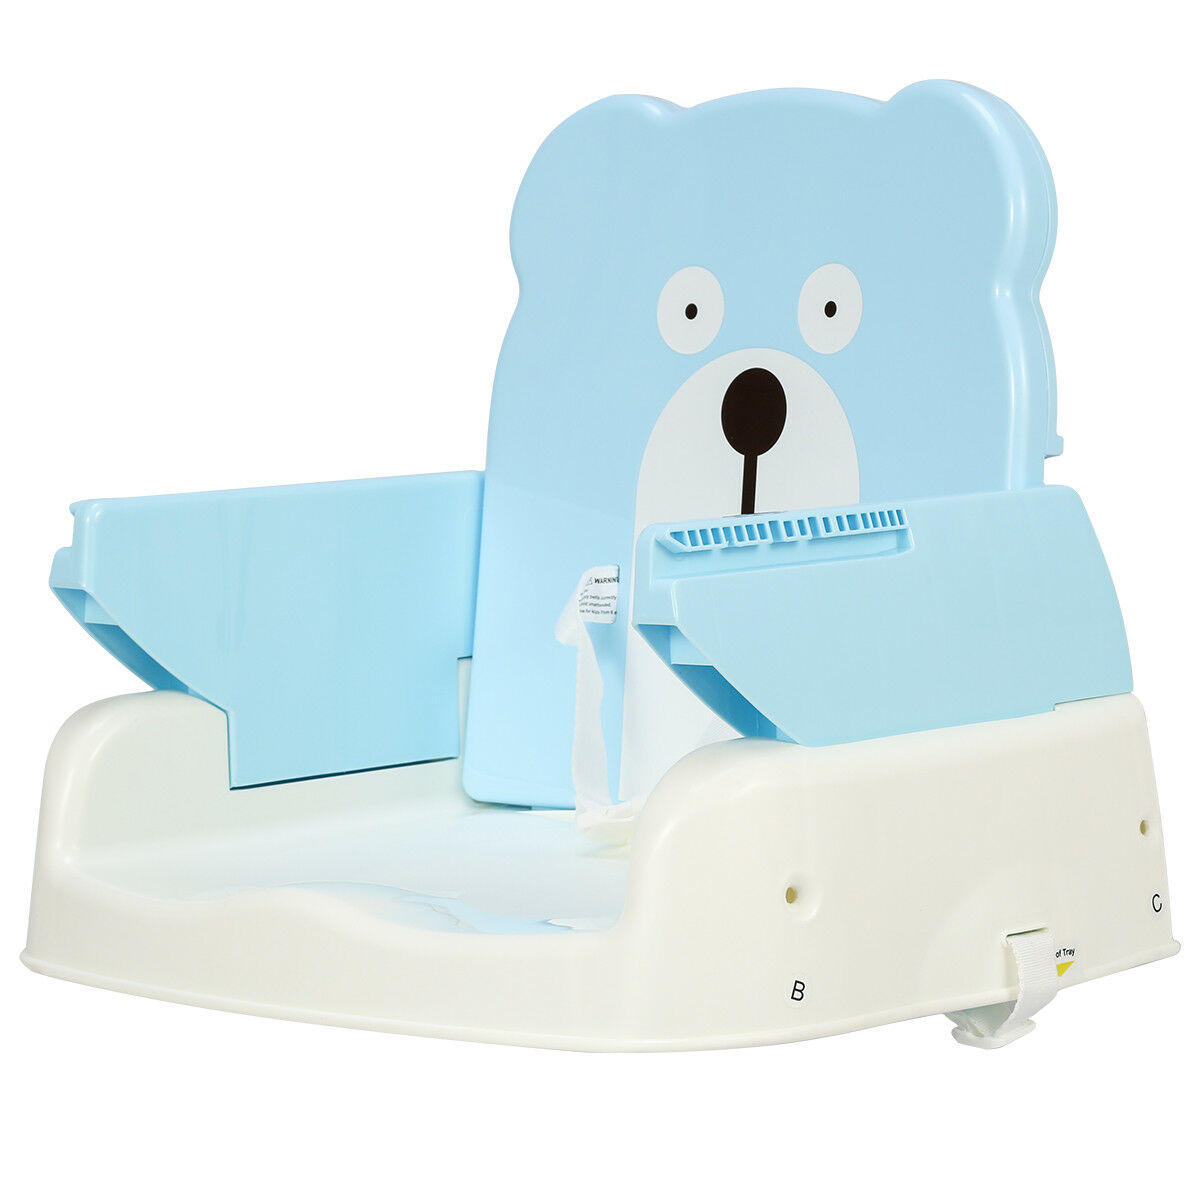 Incredible Details About Portable Folding Booster Seat Toddler Chair Adjustable Height Safety Belt Tray Ibusinesslaw Wood Chair Design Ideas Ibusinesslaworg